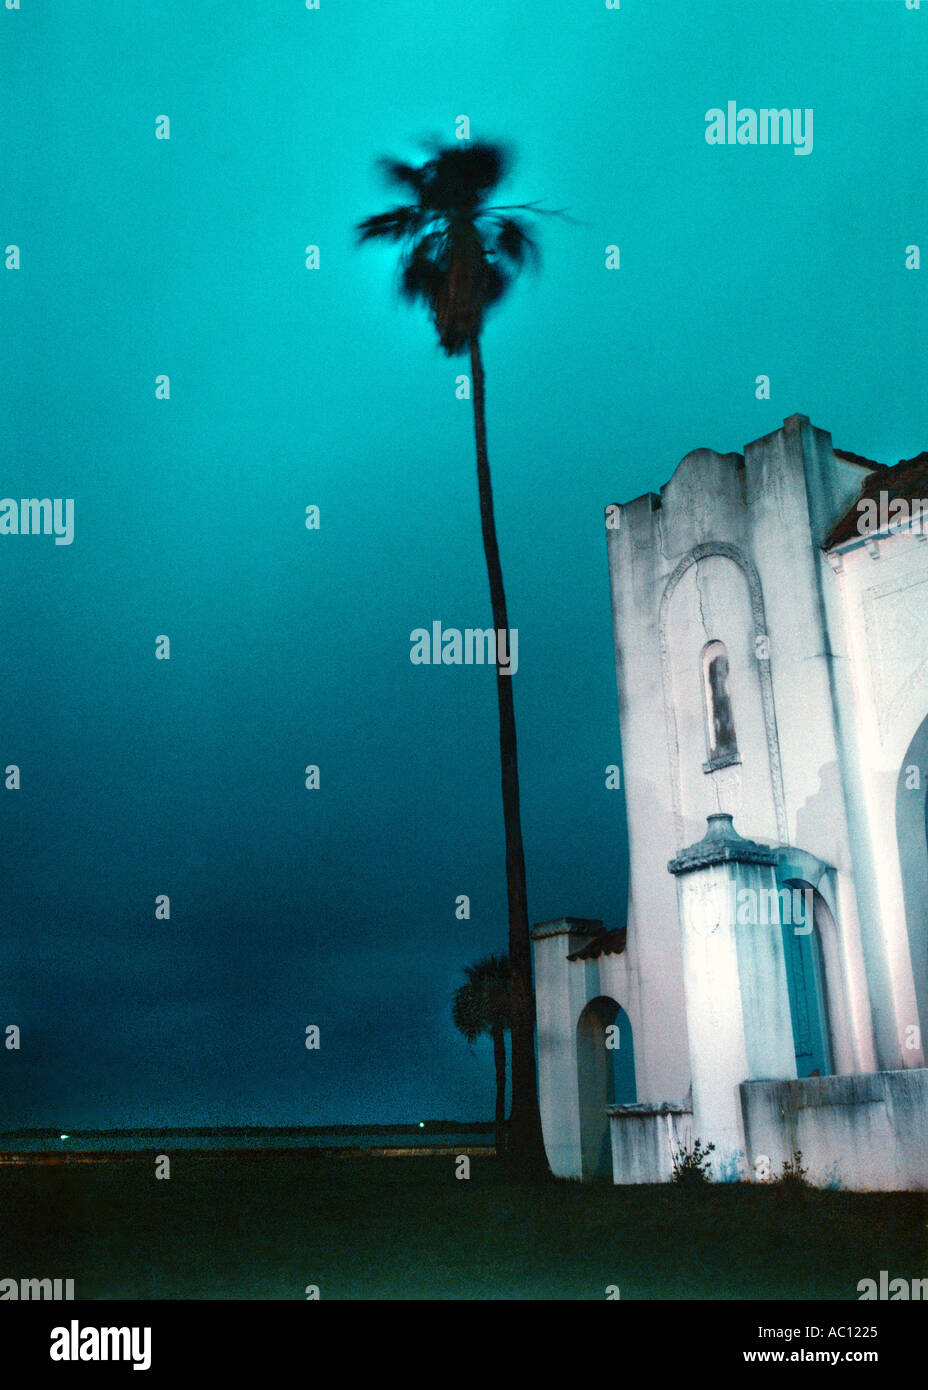 night shot of palm tree and building - Stock Image